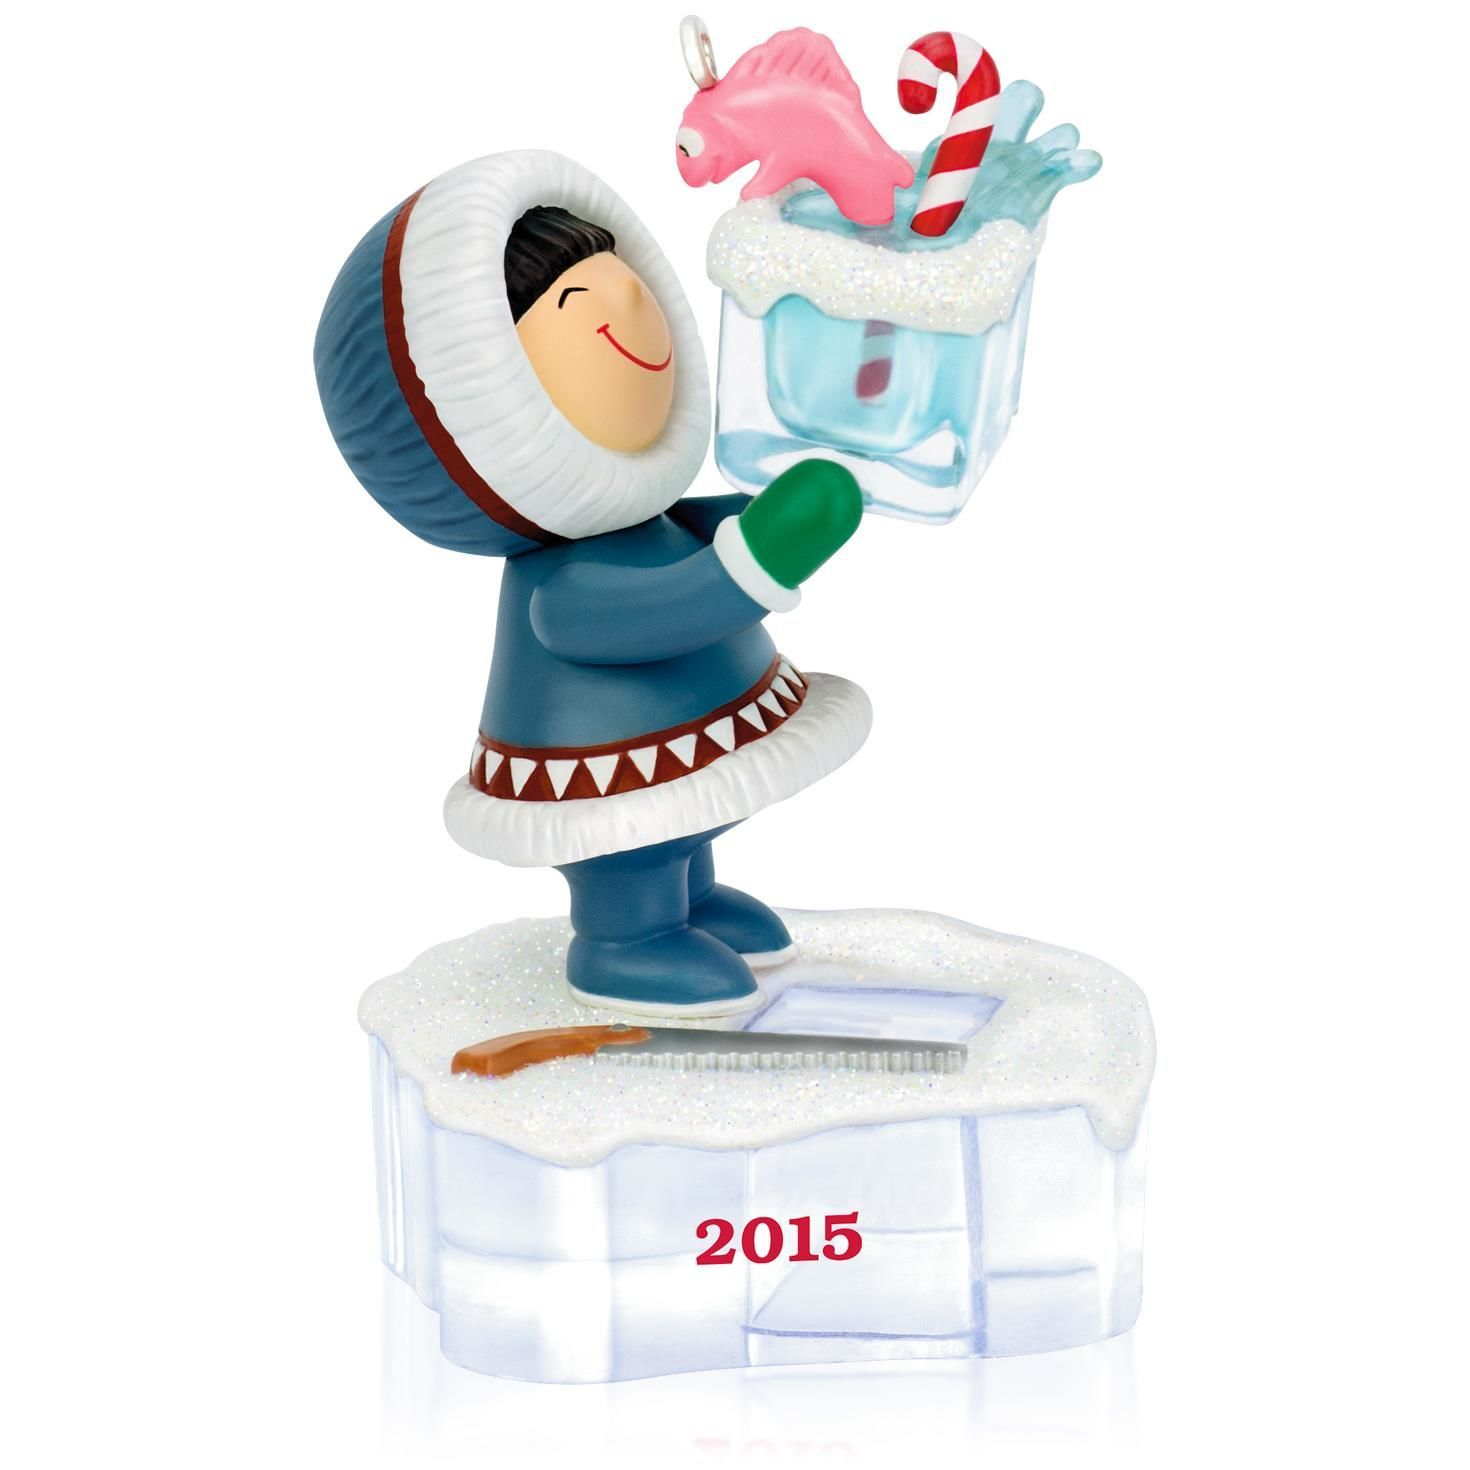 Frosty Friends Go Ice Fishing Ornament | ornaments | Pinterest ...